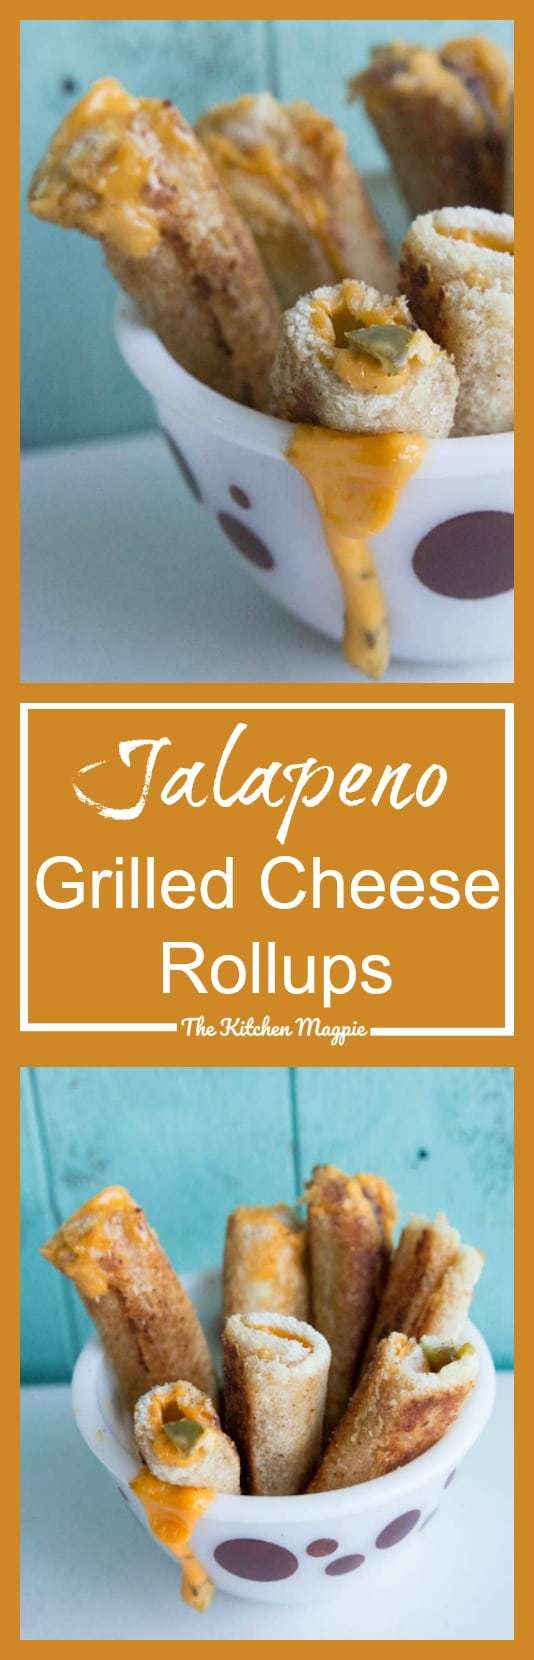 grilled cheese rollups